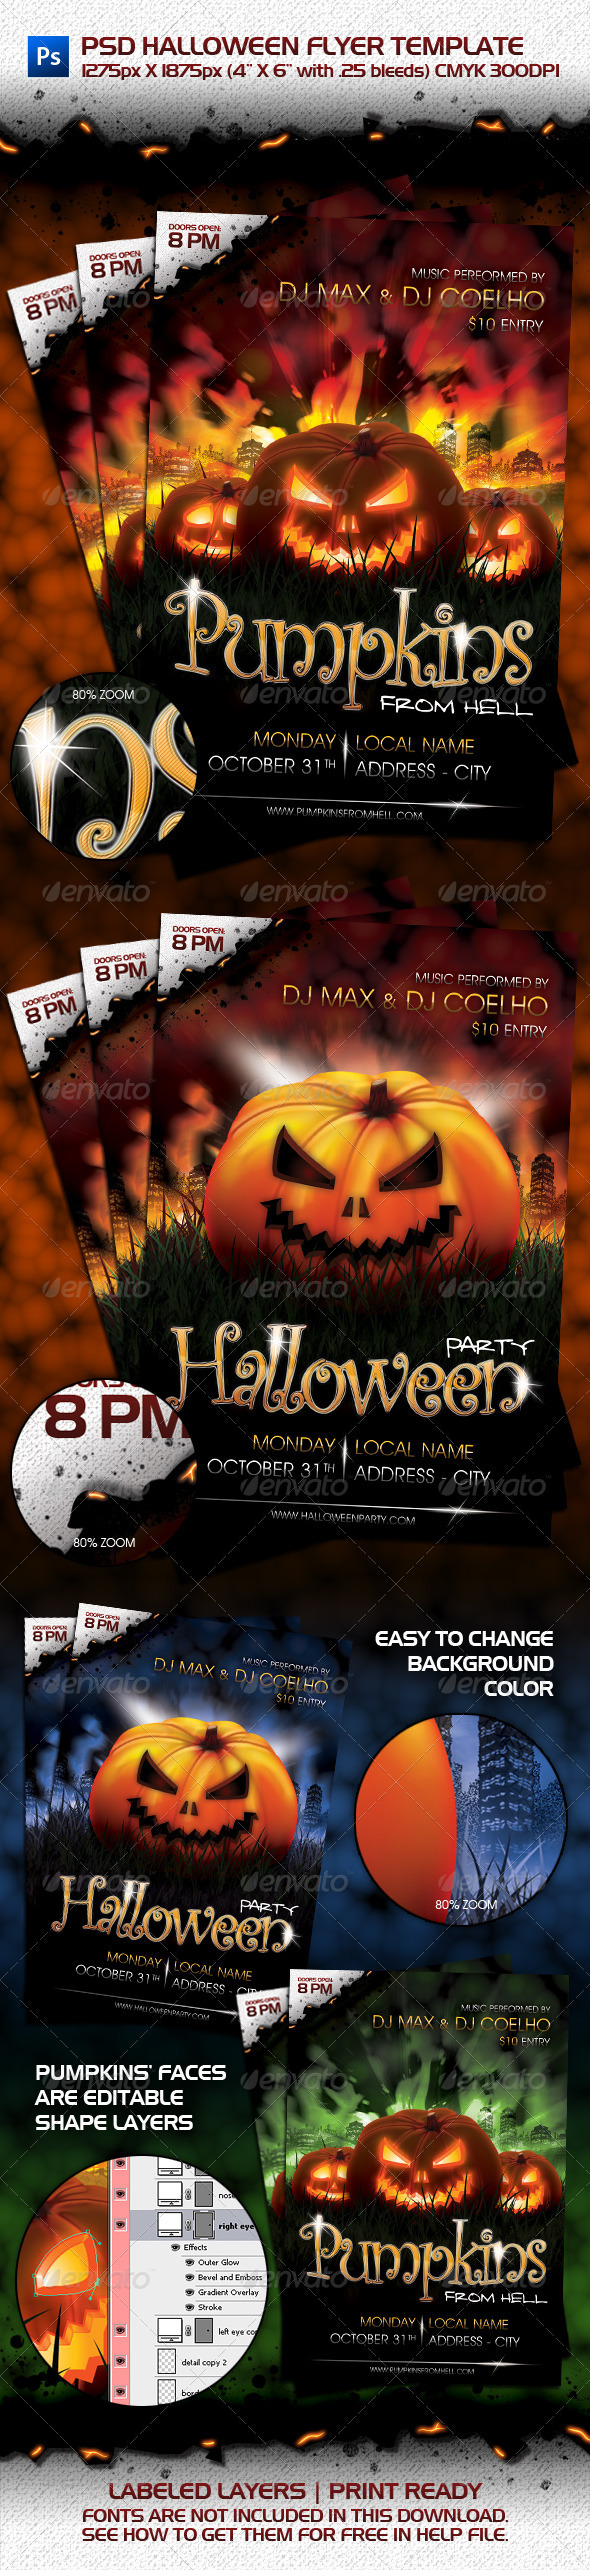 PSD Halloween Flyer Template - Clubs & Parties Events